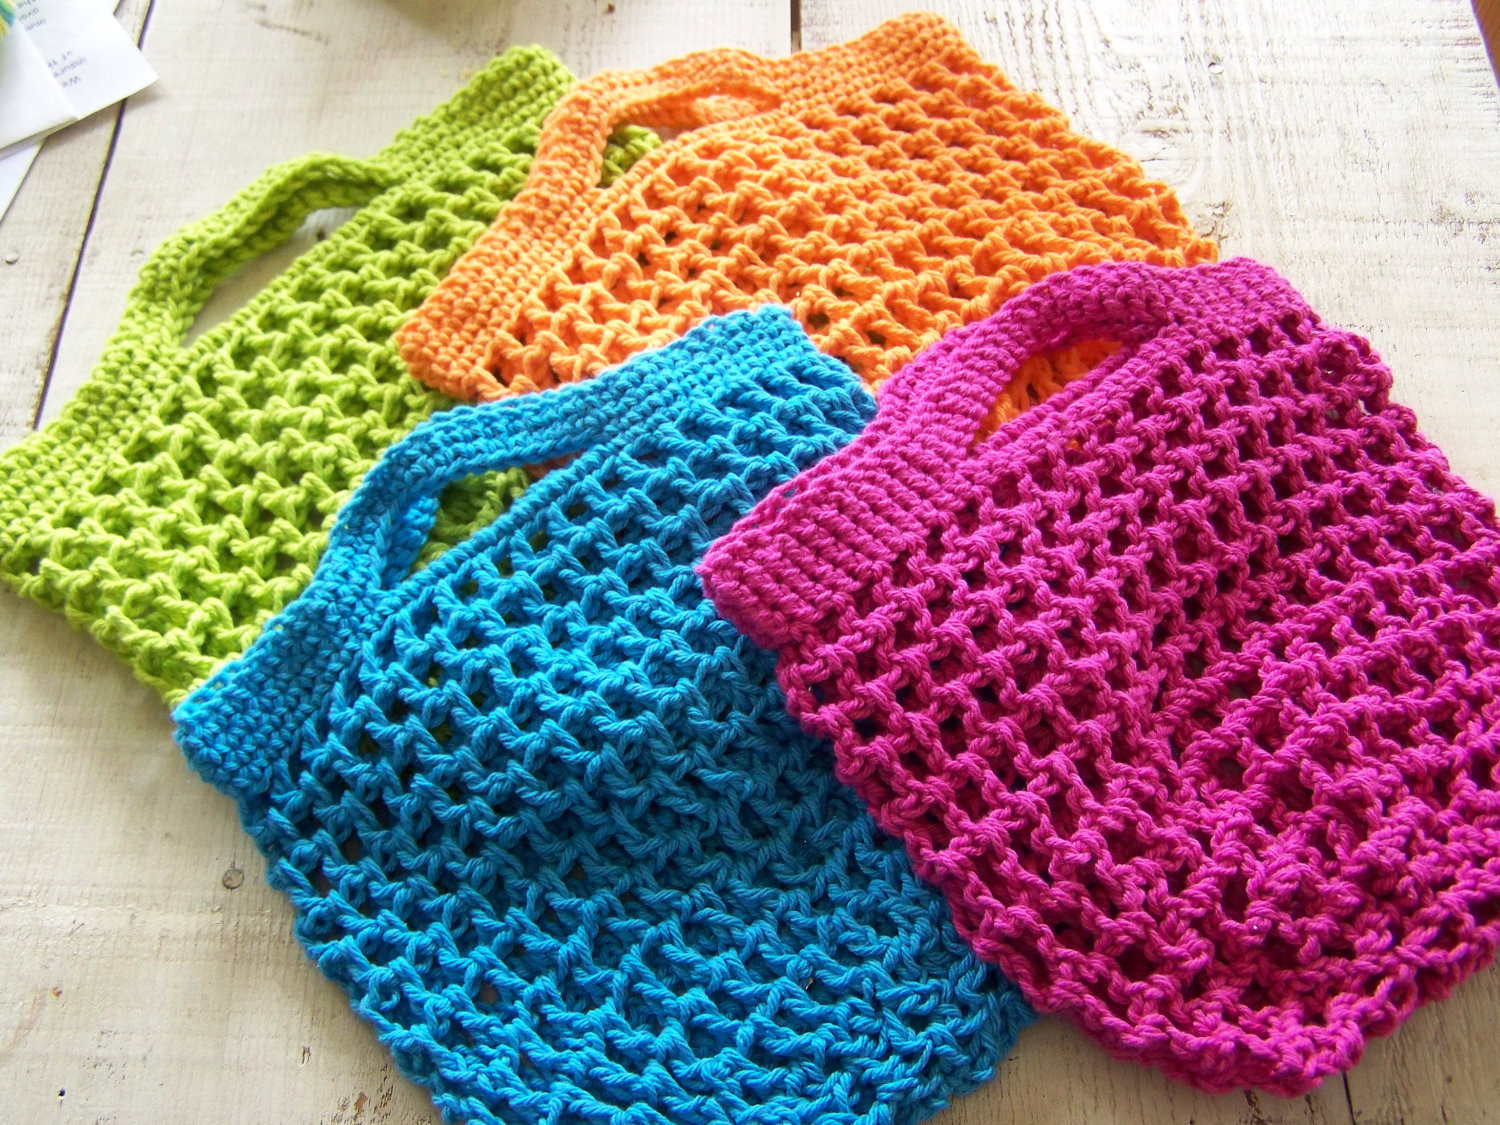 Crochet Grocery Bags Luxury 4 Reuseable Grocery Shopping Bags Hand Crocheted Cotton Of New 45 Pictures Crochet Grocery Bags